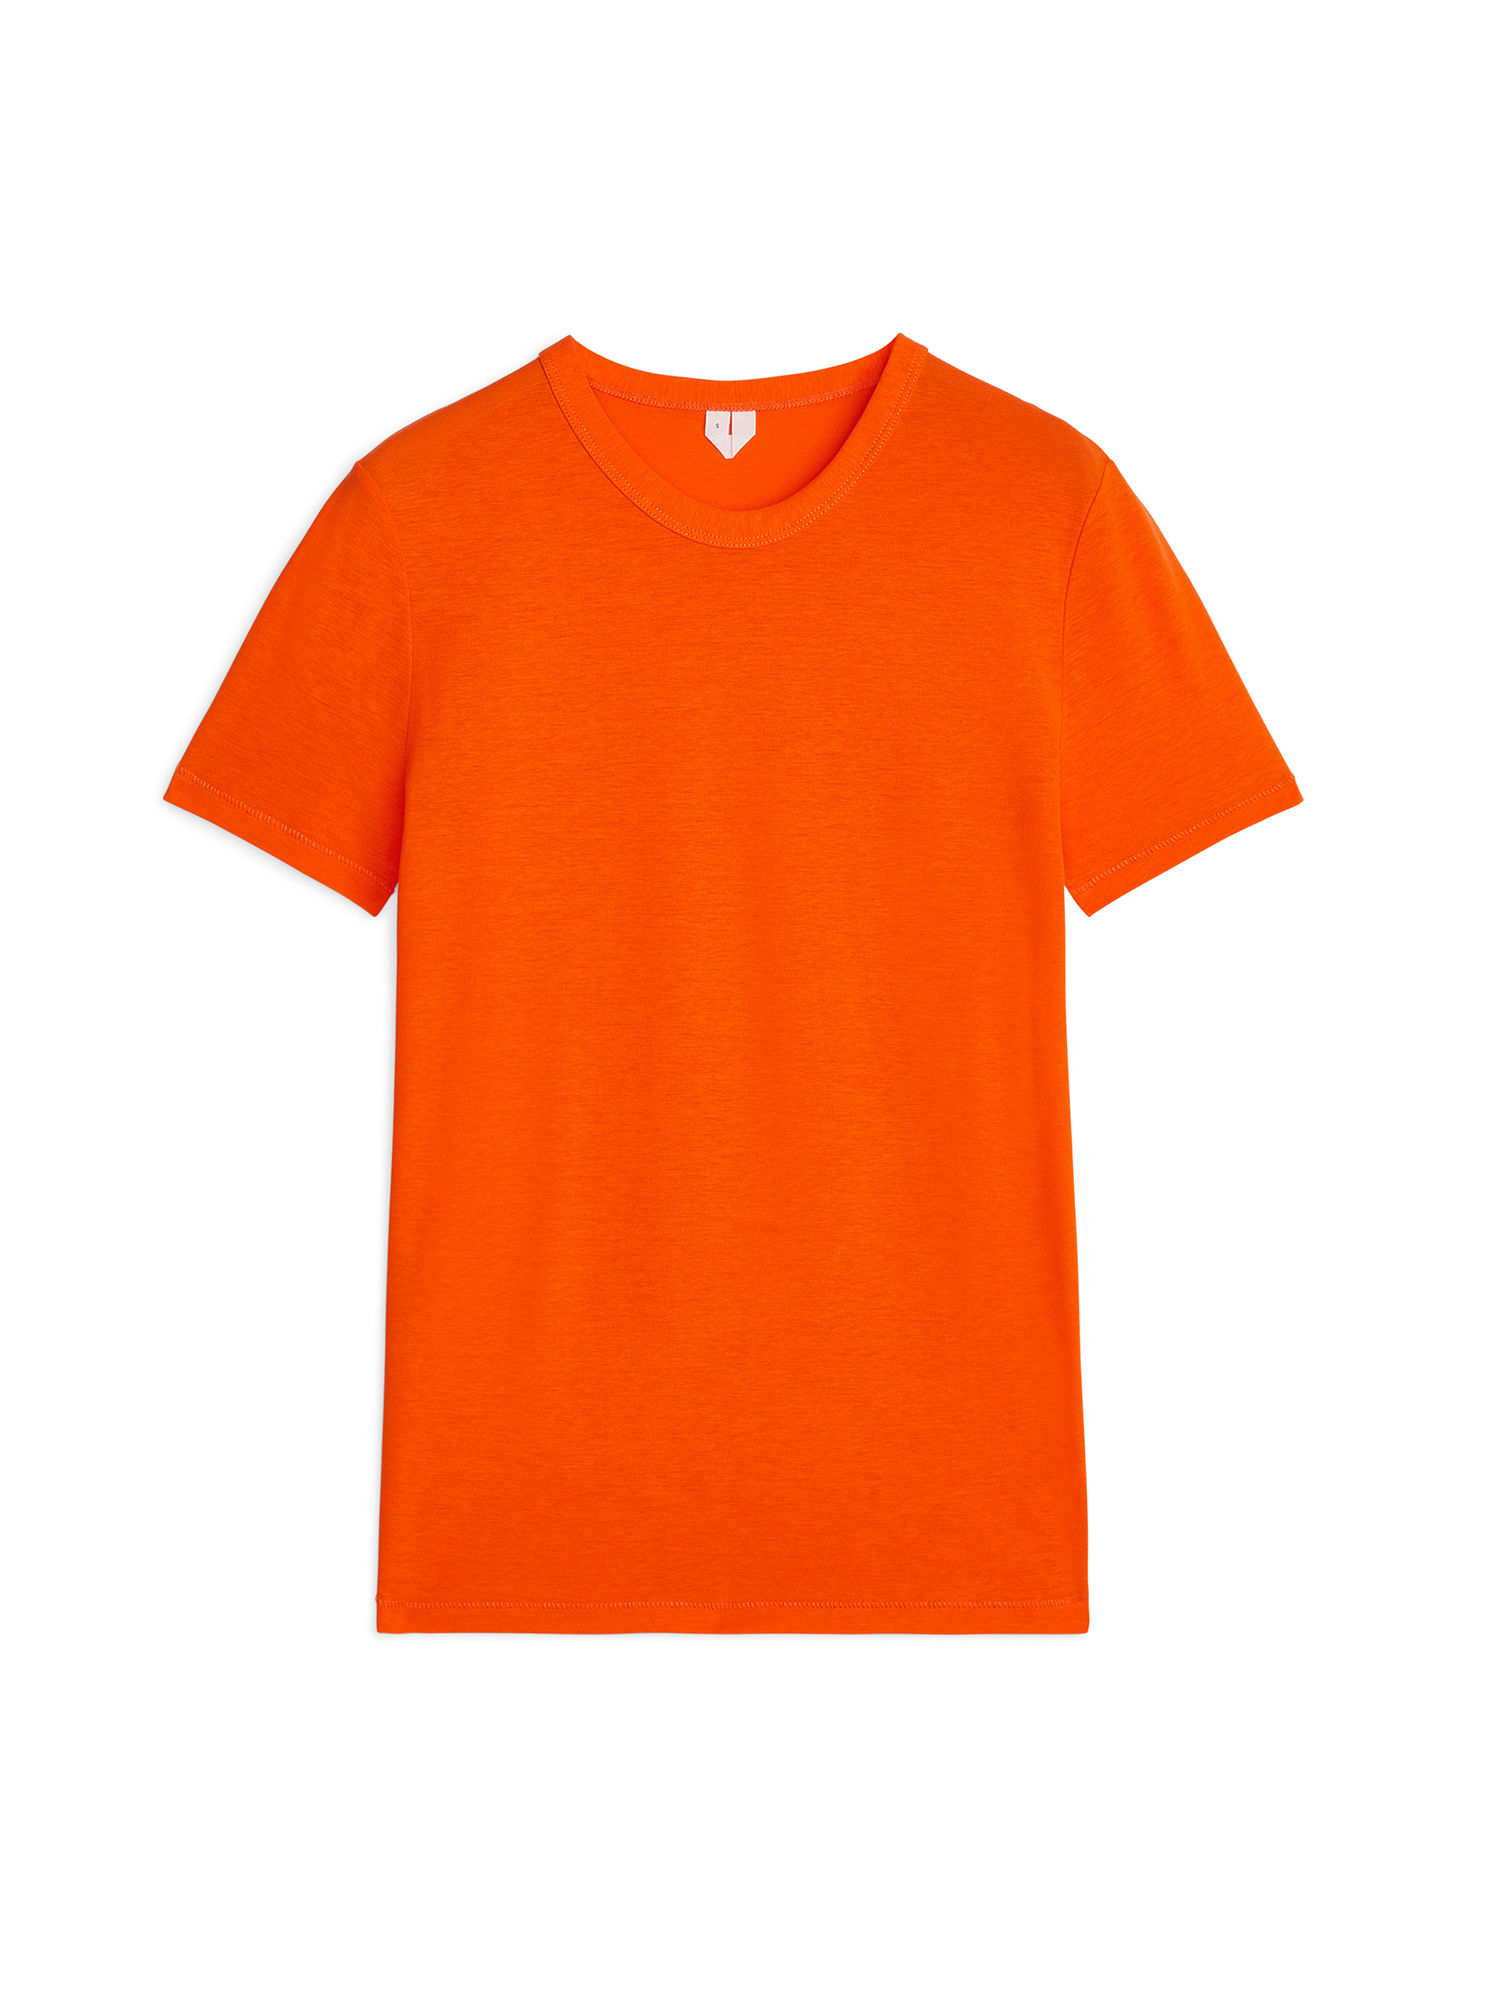 Fabric Swatch image of Arket ice crepe t-shirt in orange